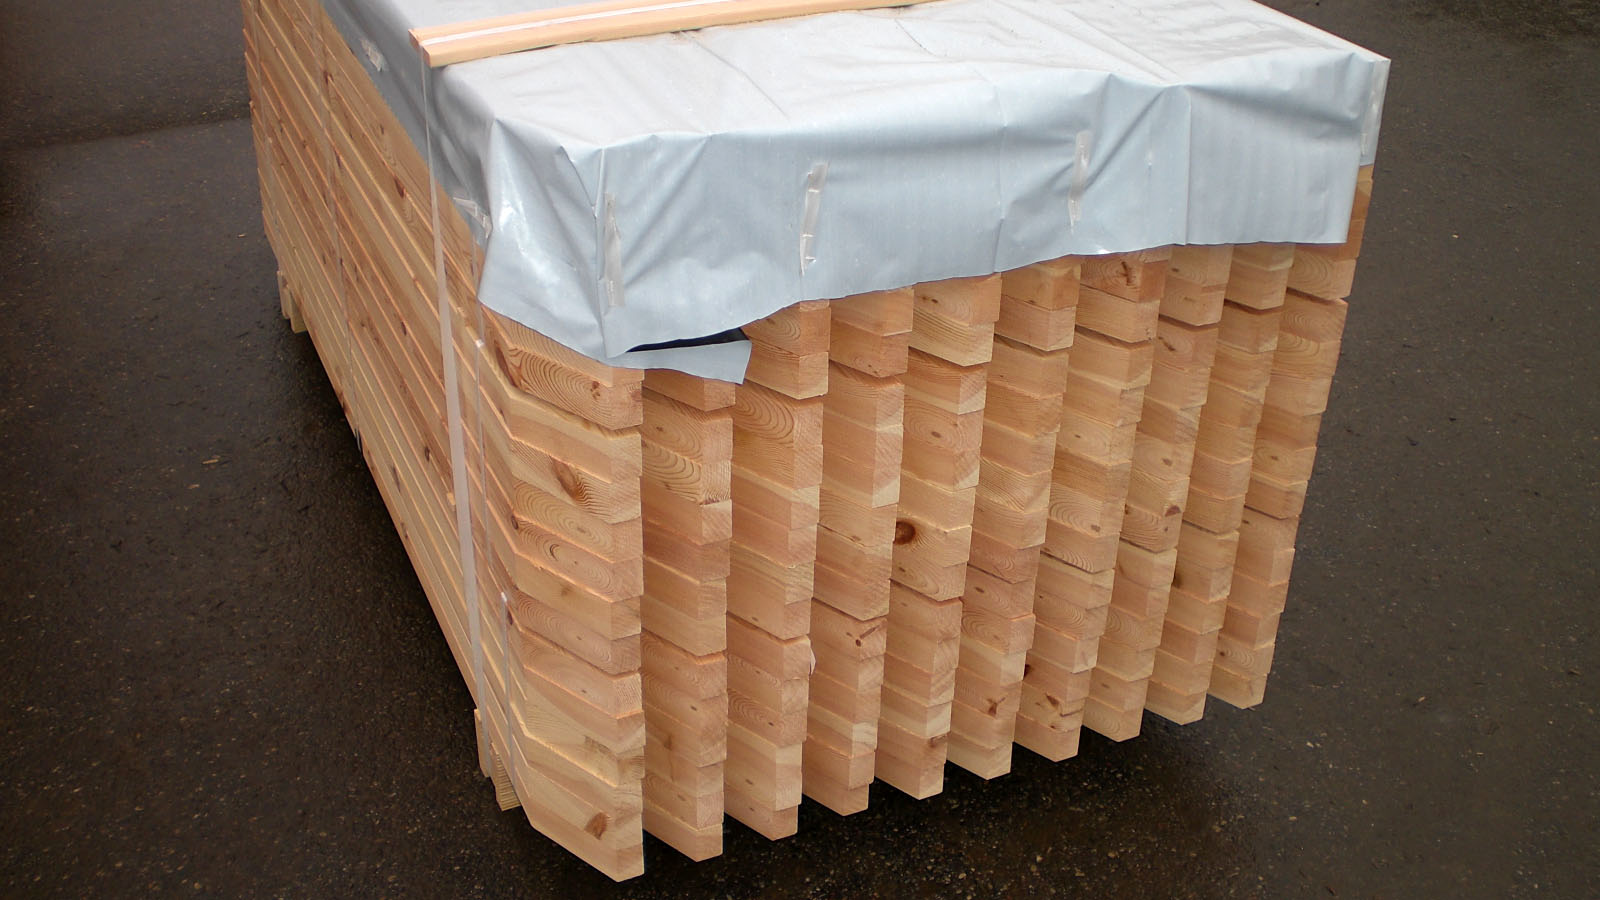 7-fencing-garden-products-and-other-specialty-products-nothern-europe-timber-production-lameko-impex